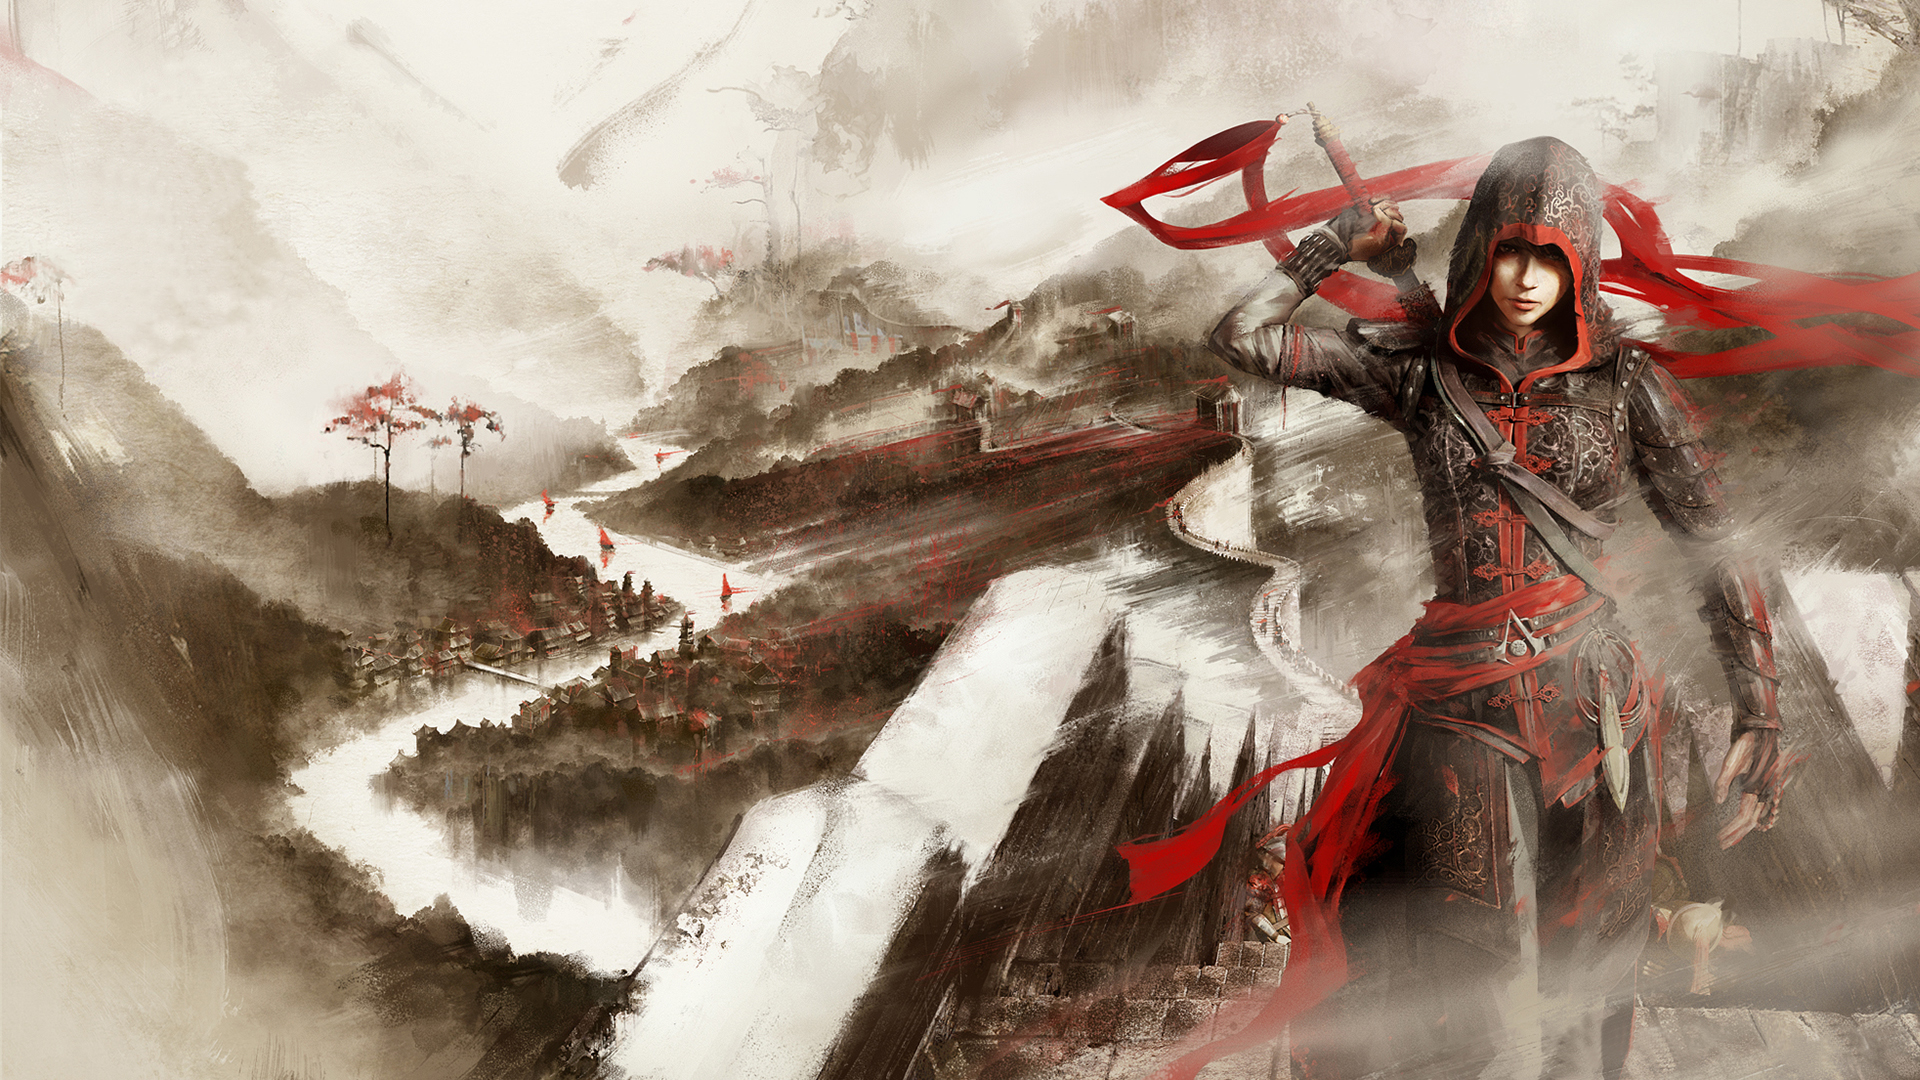 11. Assassin's Creed Chronicles: China